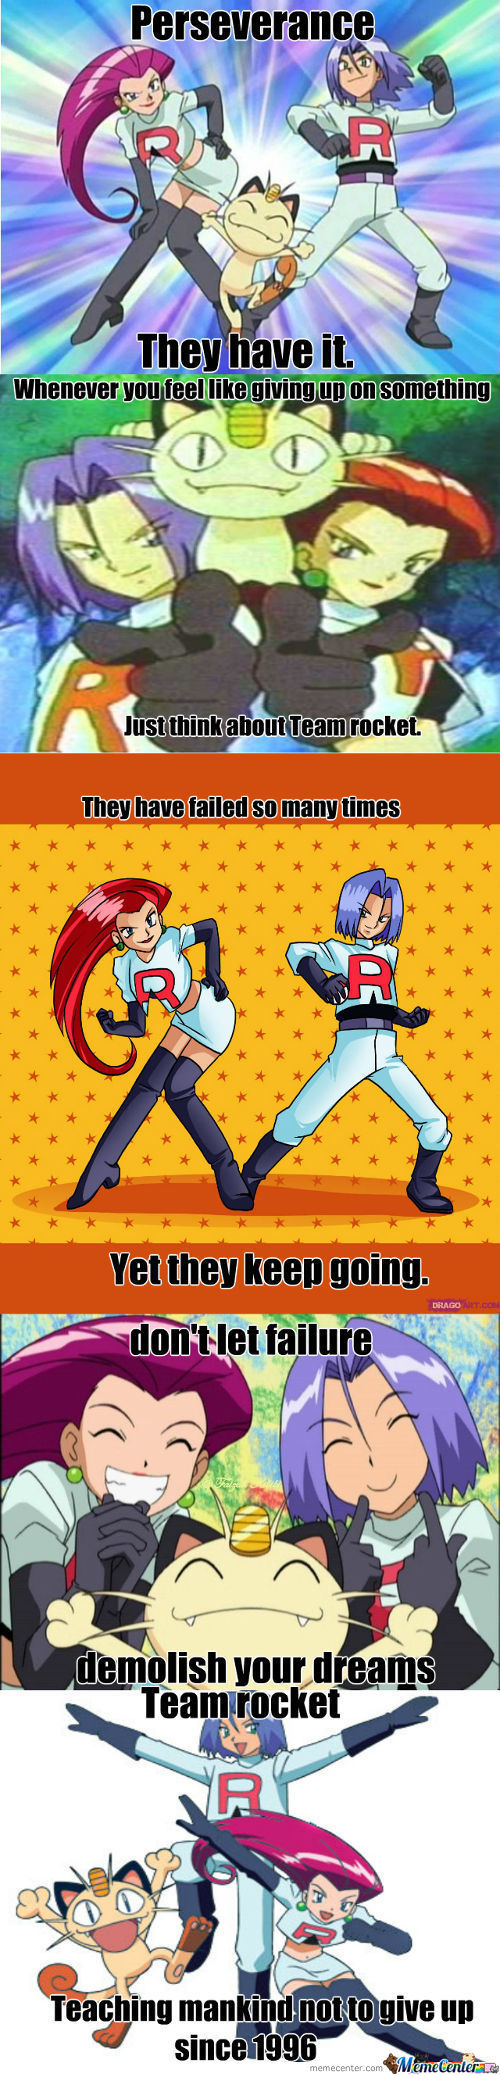 Team Rocket, My Heroes